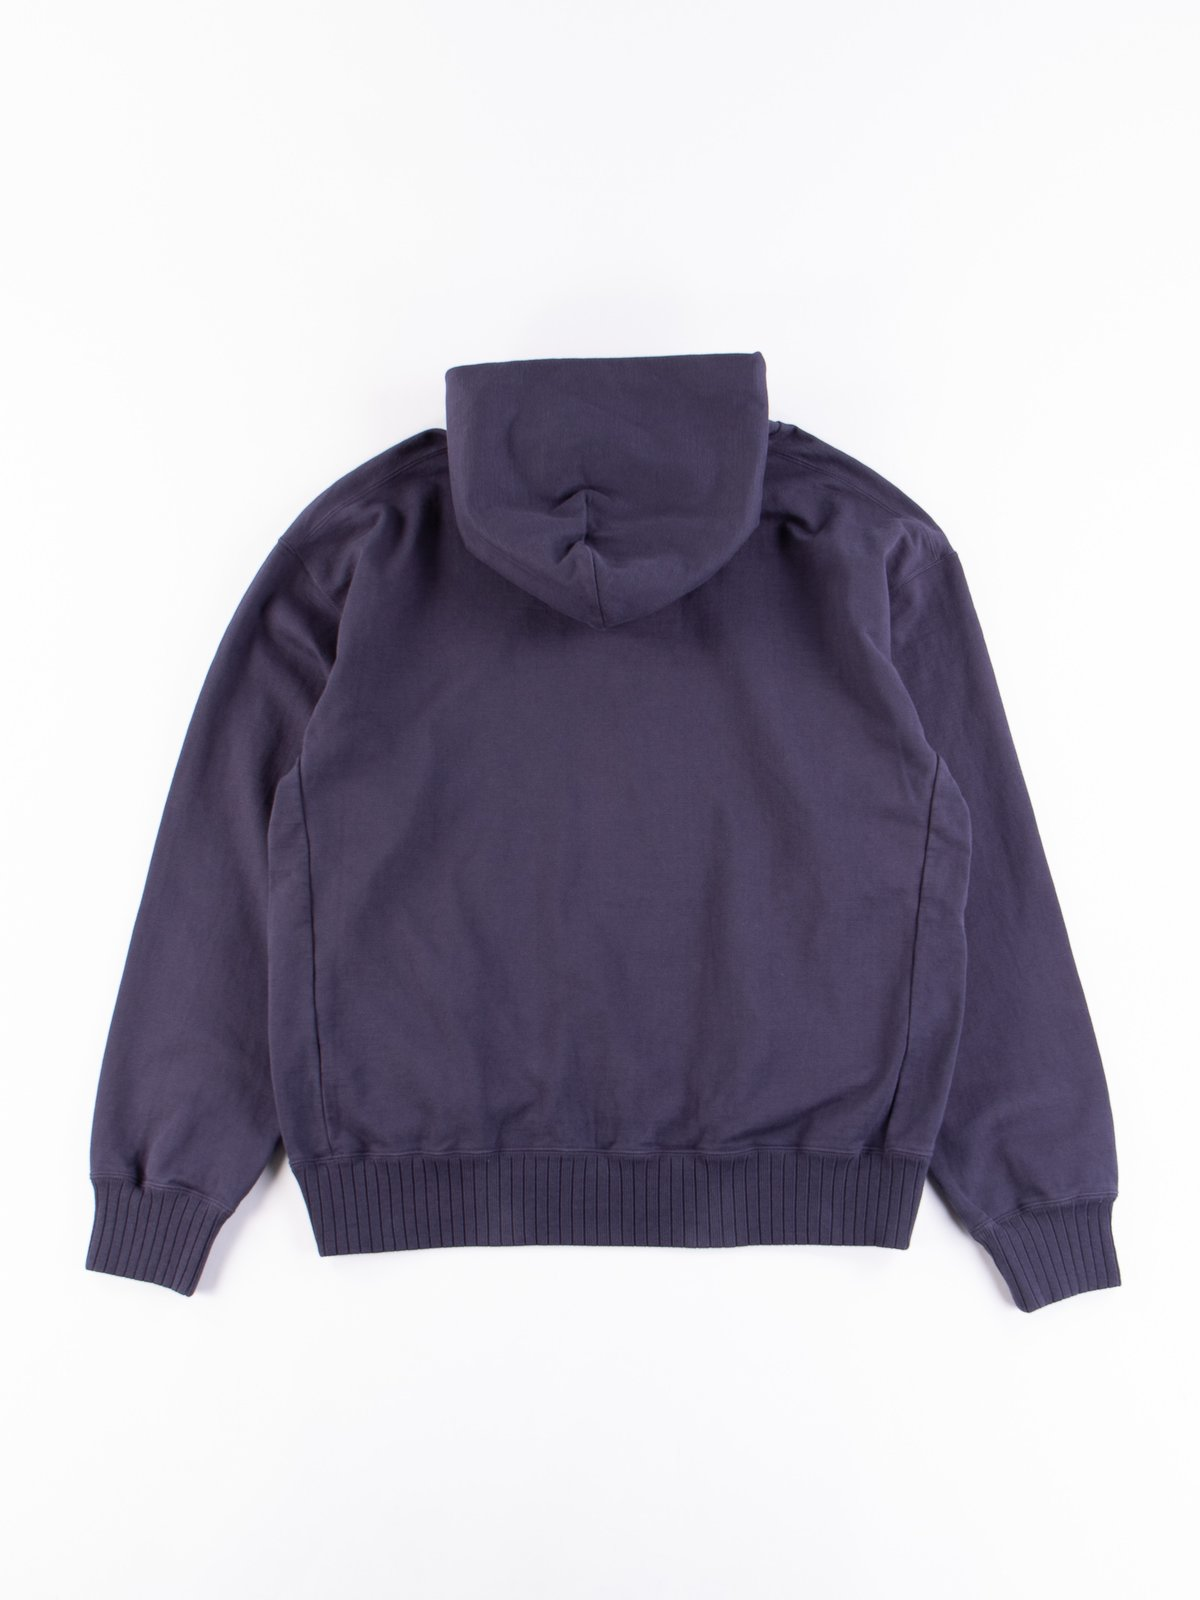 Classic Navy High Density Sweat Pullover Parka - Image 5